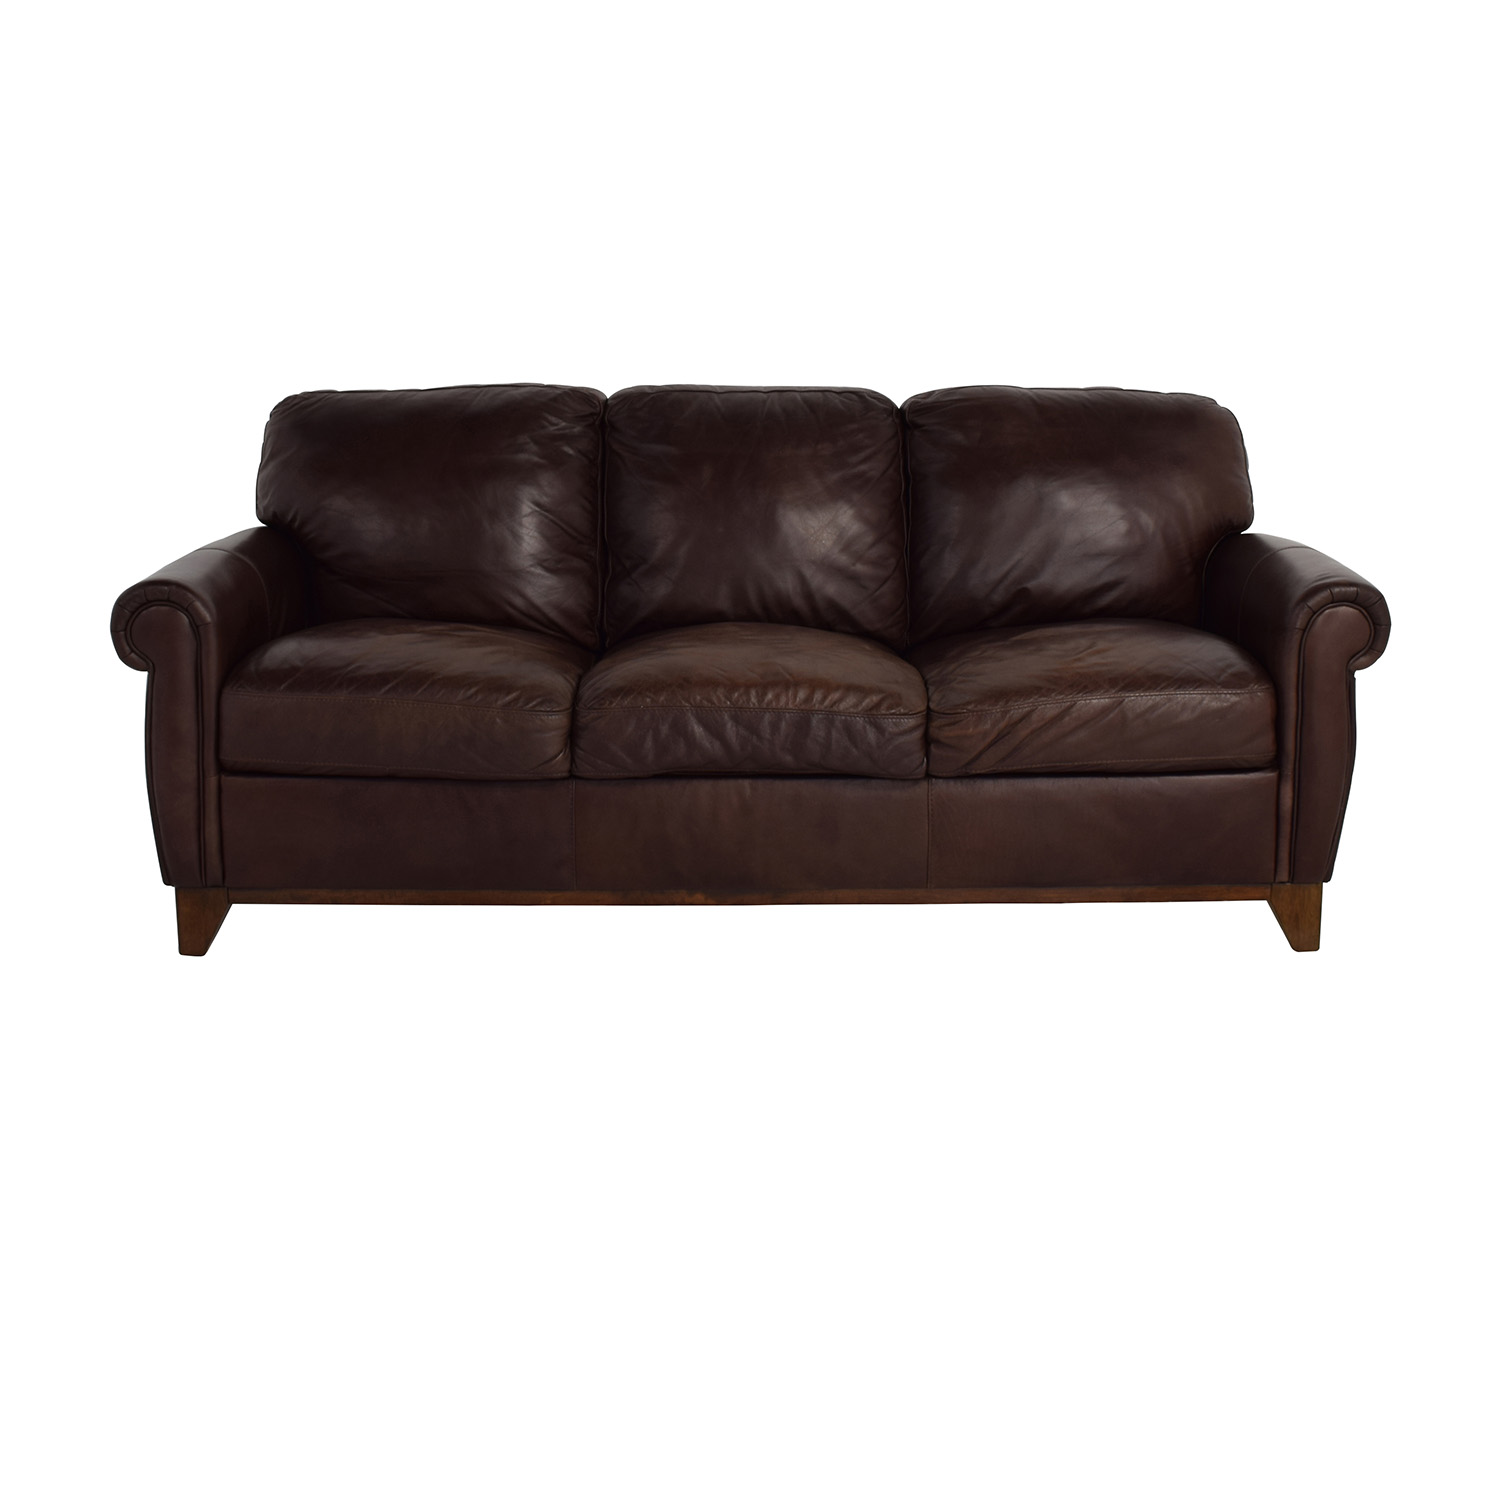 48 Off Raymour Flanigan Brown Leather Couch Rh Kaiyo Com